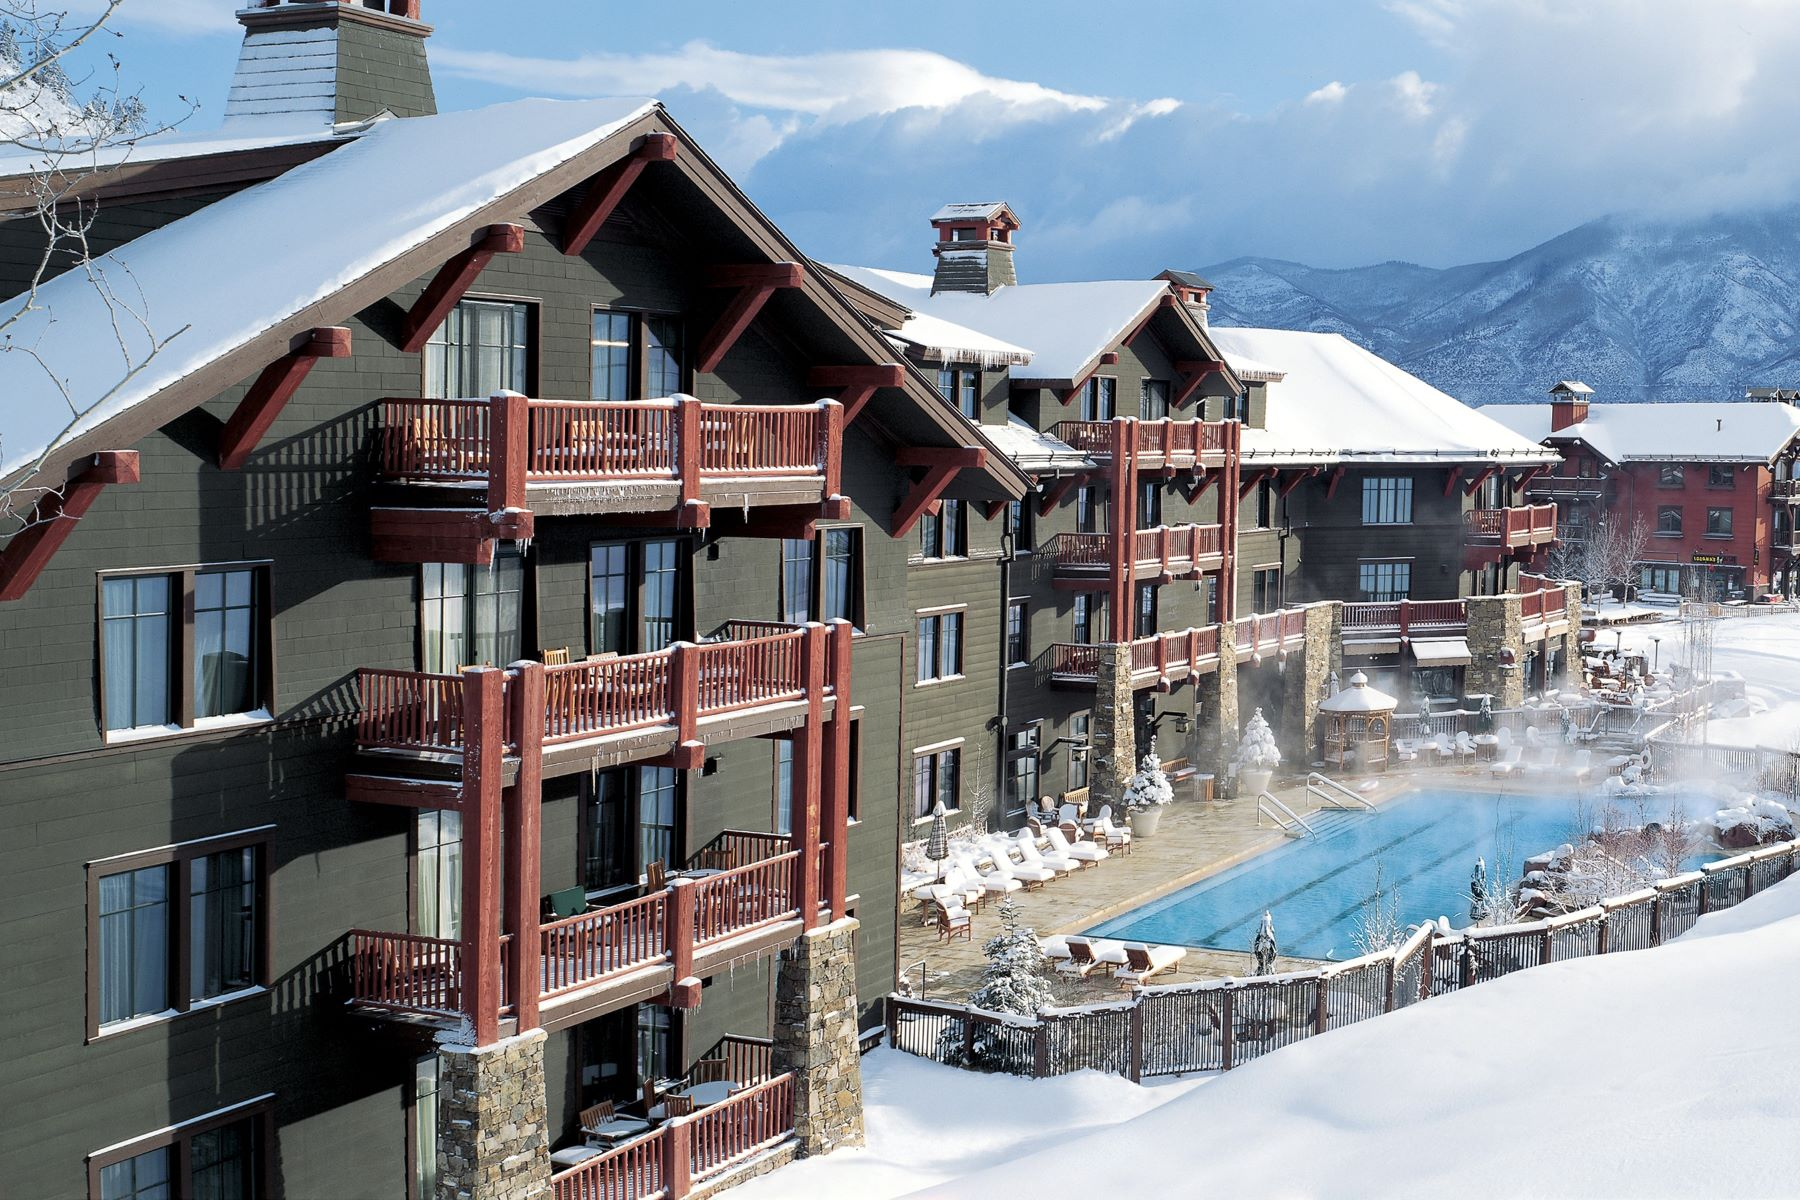 Condominium for Sale at The Ritz Carlton 0075 Prospector Road #8307-6 Aspen, Colorado 81611 United States